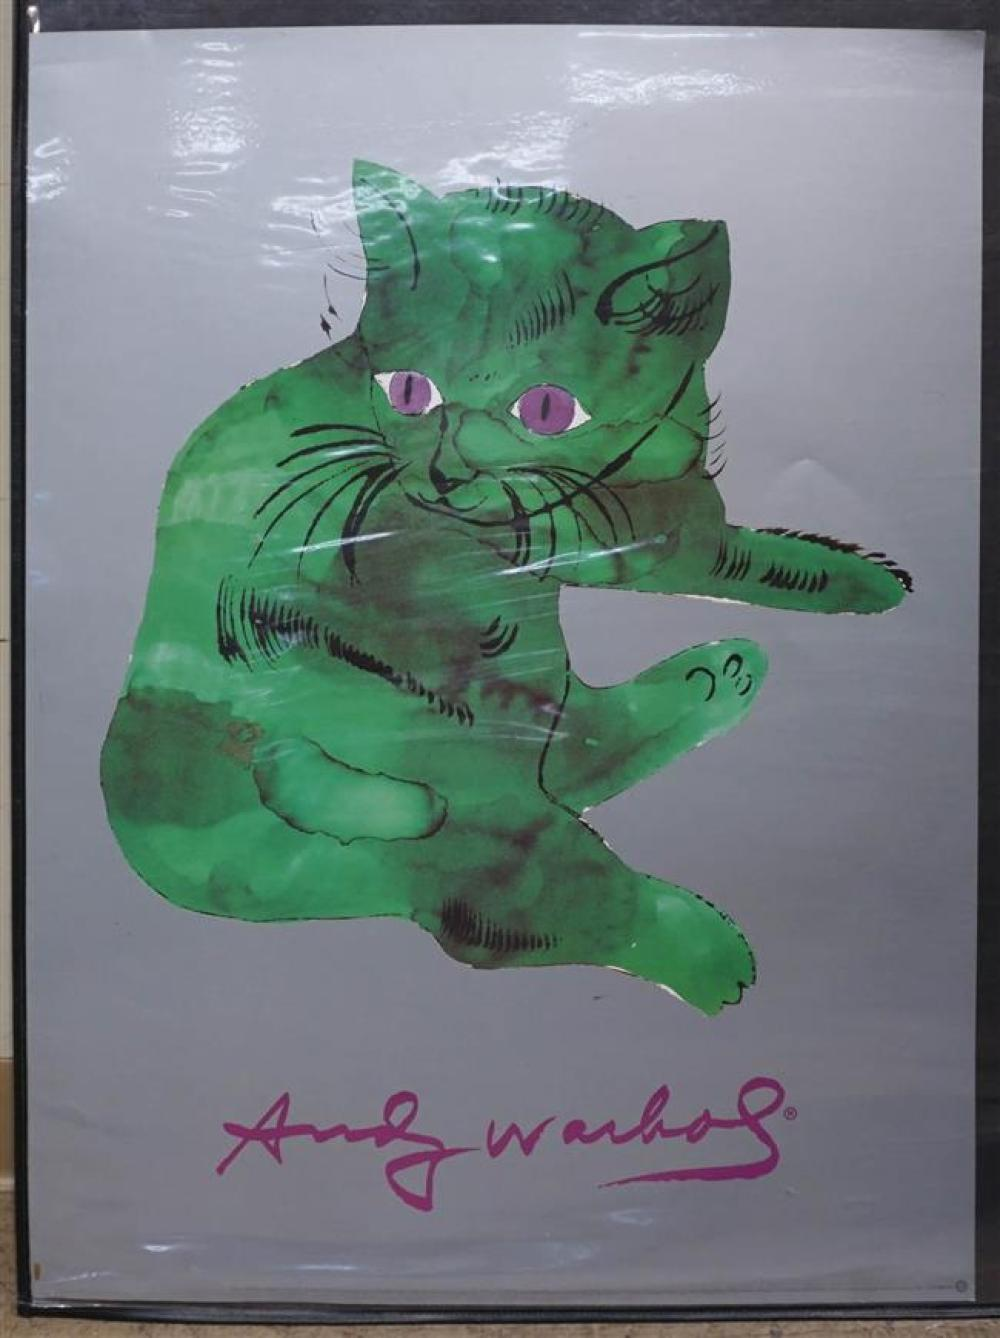 After Andy Warhol, Green Cat, Offset Color Print Poster, Published by Neuse Publishing Co; Unframed 31.5 x 23.75 inches